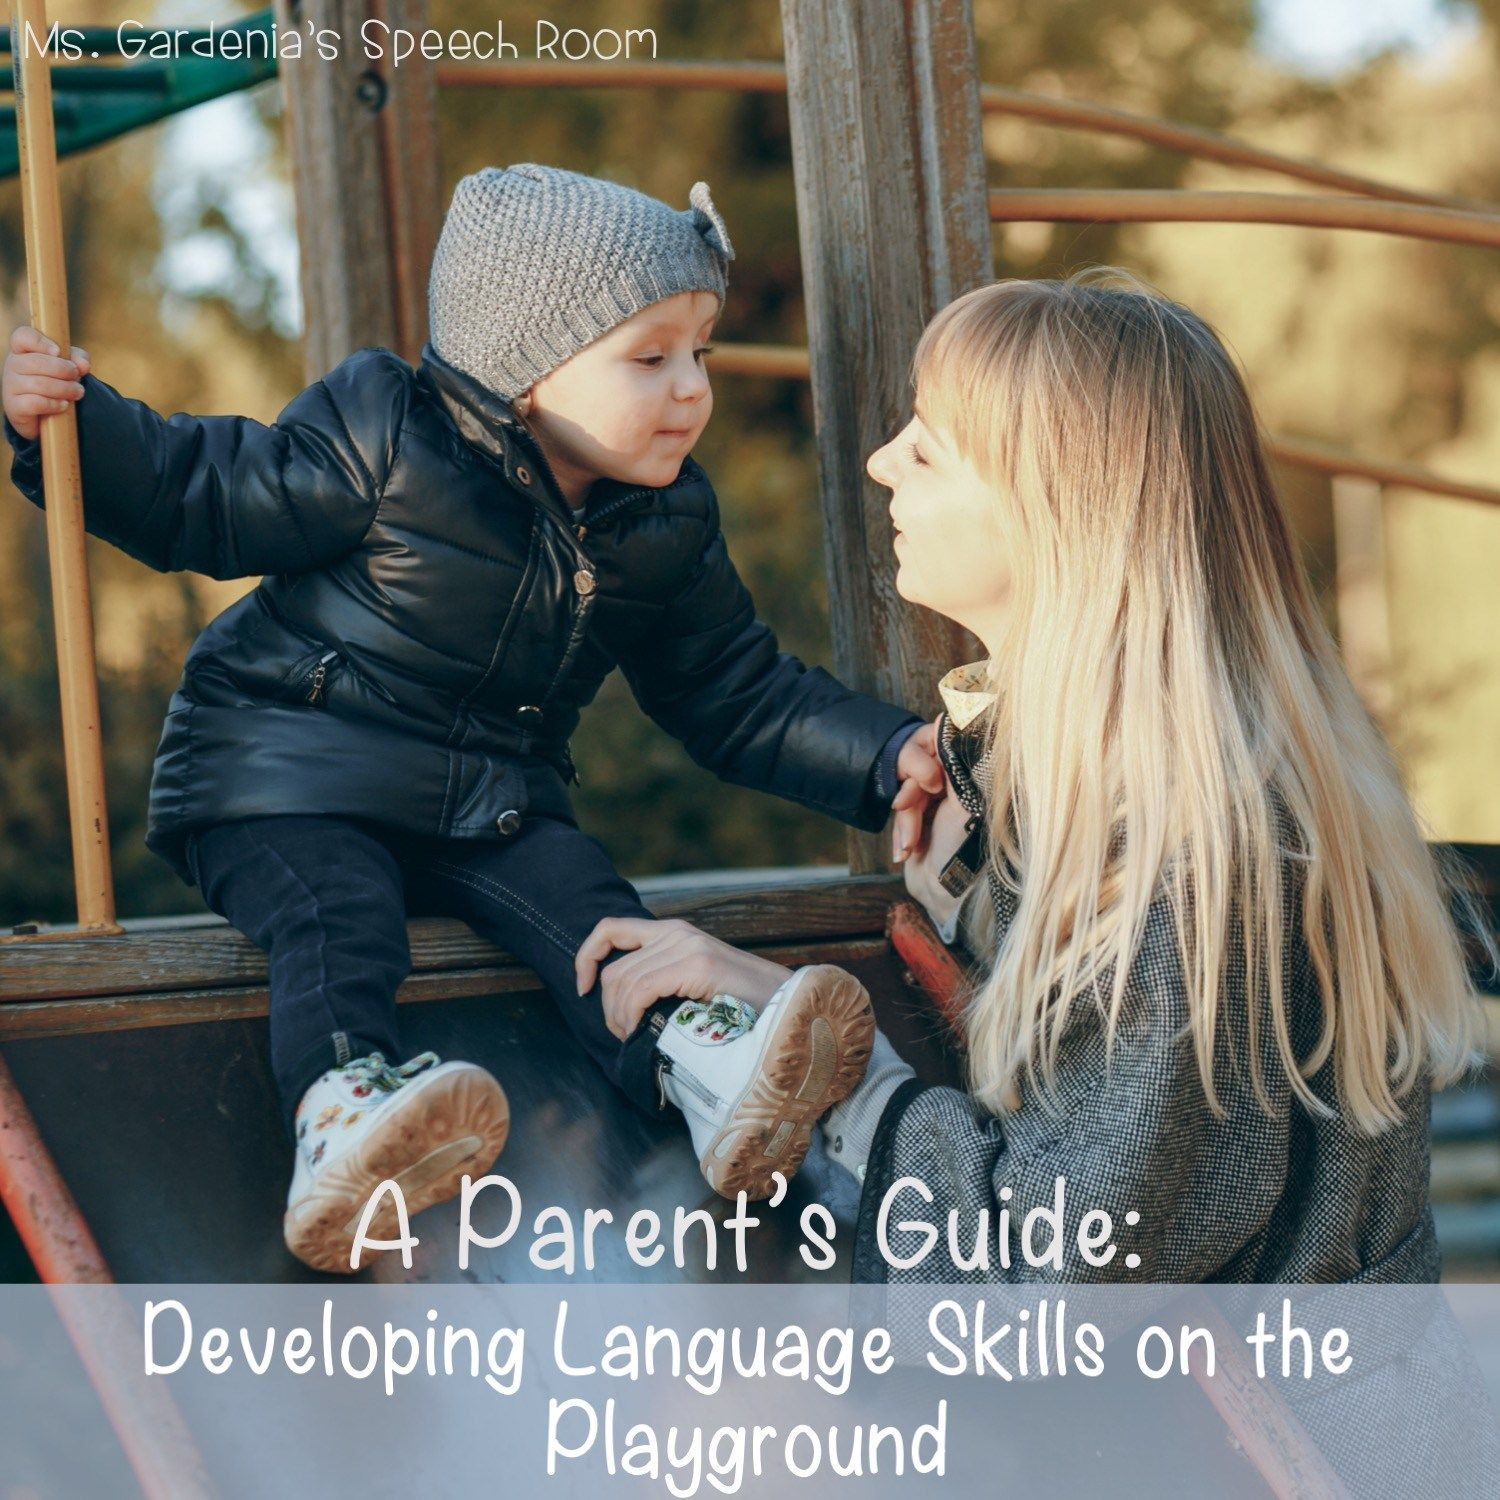 Developing And Improving Language Skills On The Playground